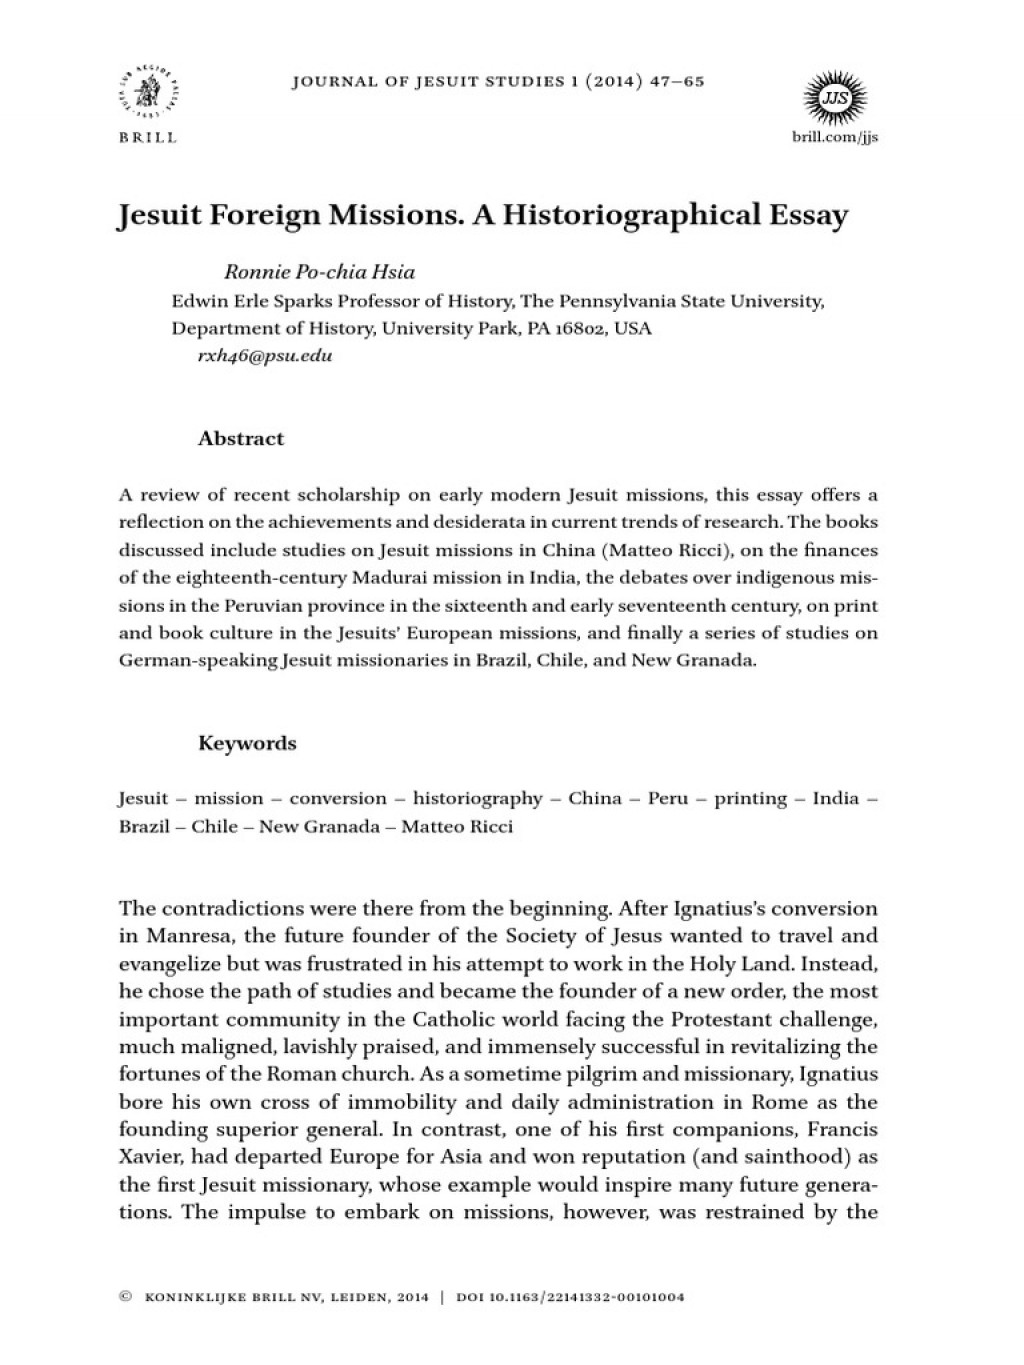 004 Historiographical Essay Example Jesuit Foreign Missions  58d38df8ee3435de0e6e4ab7 Phenomenal Historiography Sample On Slavery TopicsLarge